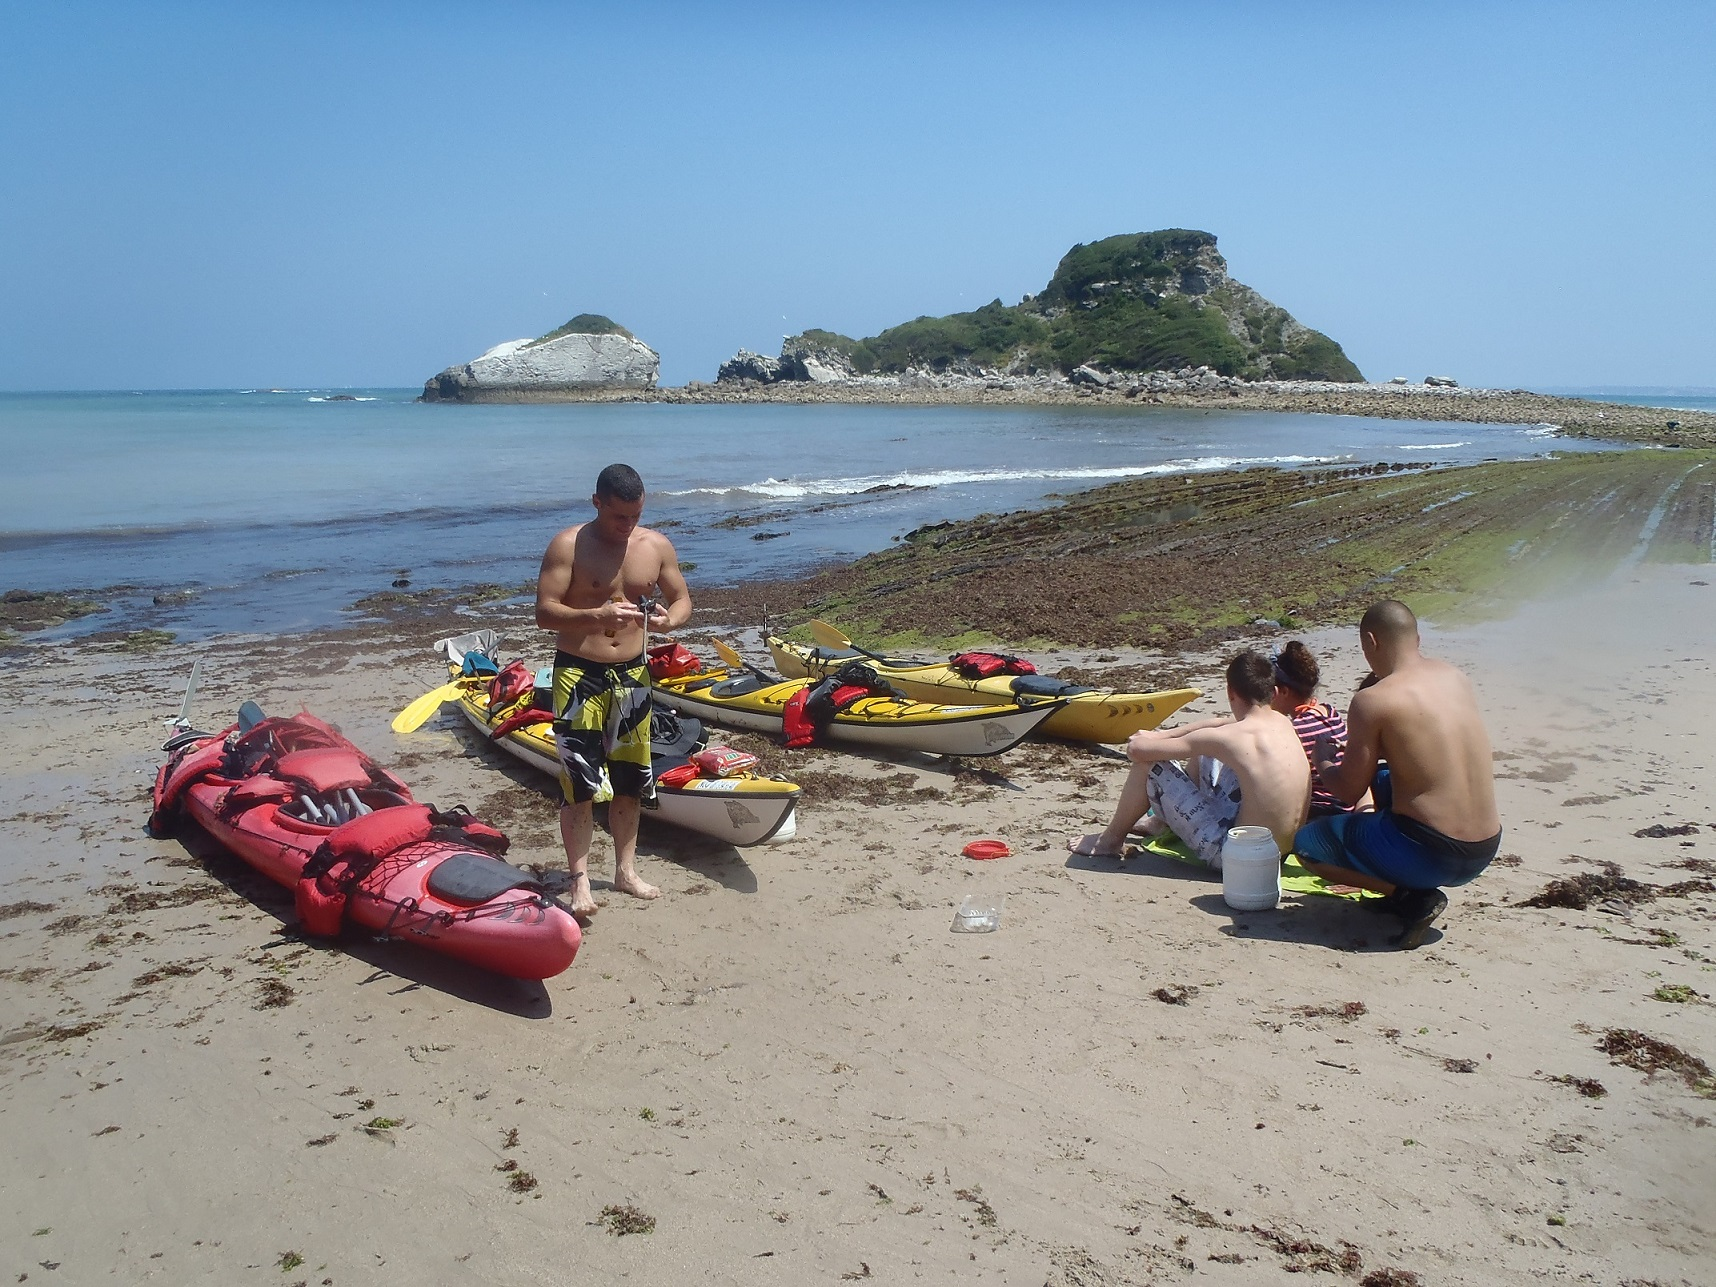 kayak-de-mer pays-basque rafting canoraft